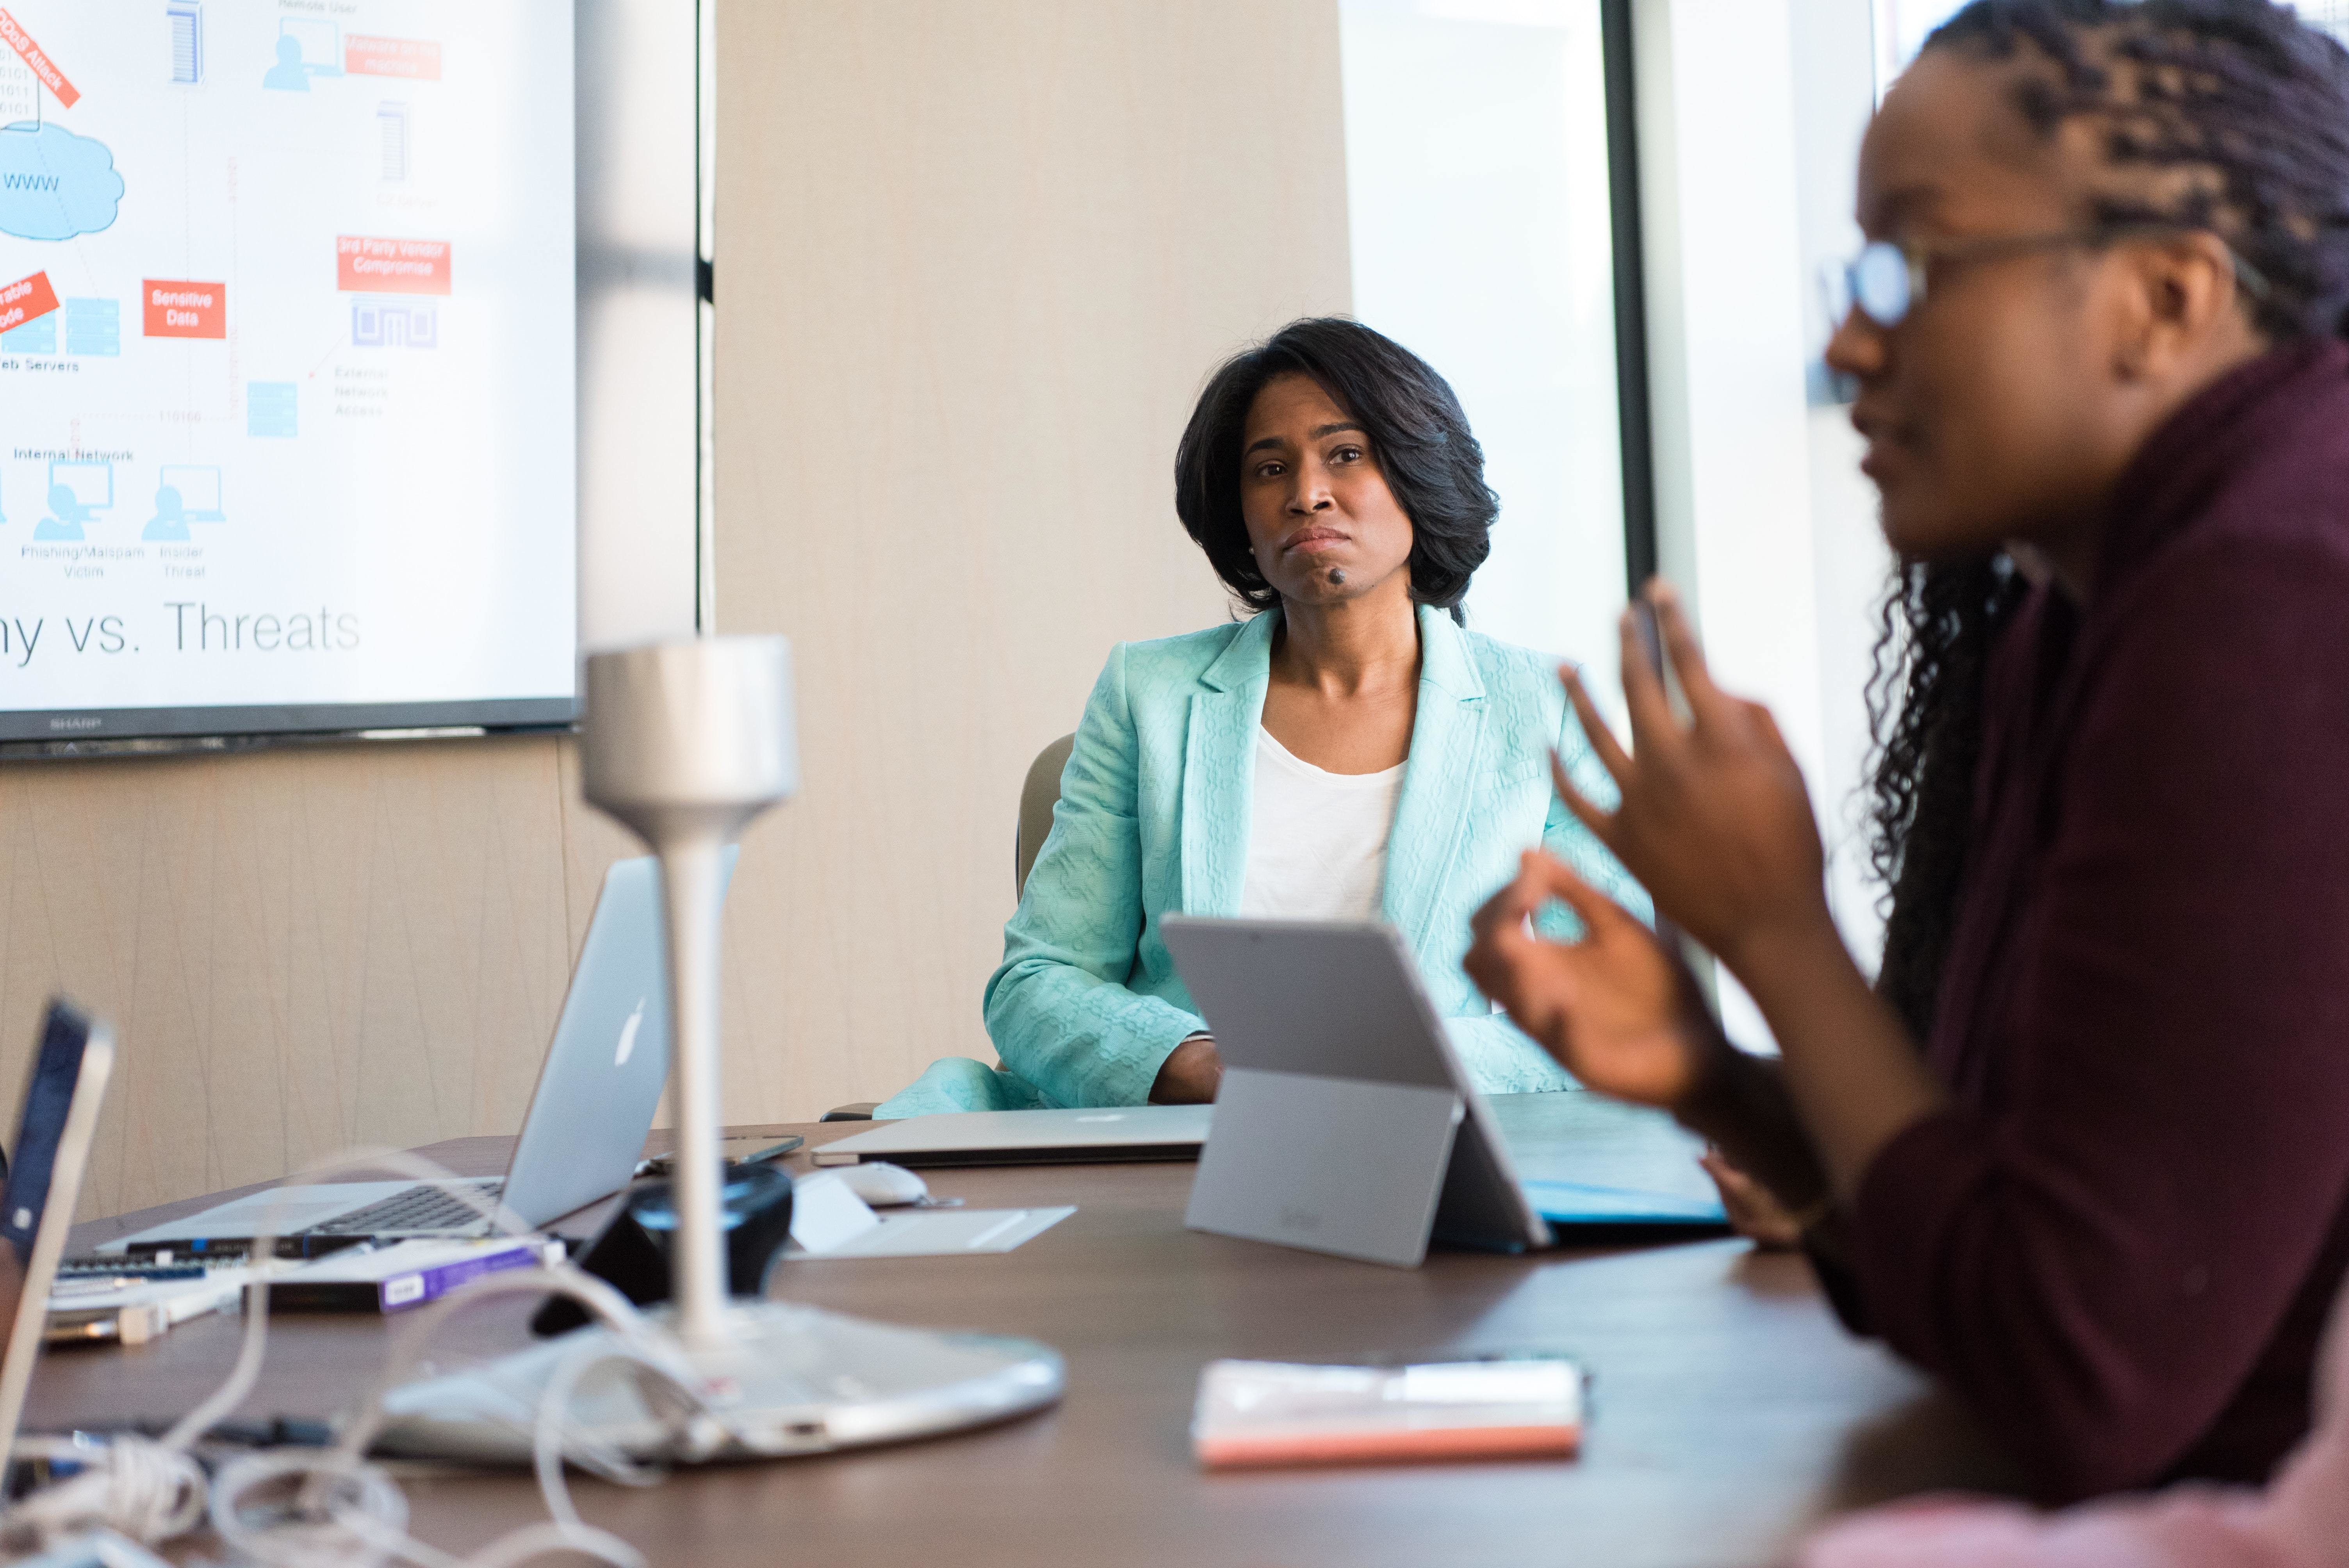 A business woman sits in a meeting room looking across to another employee